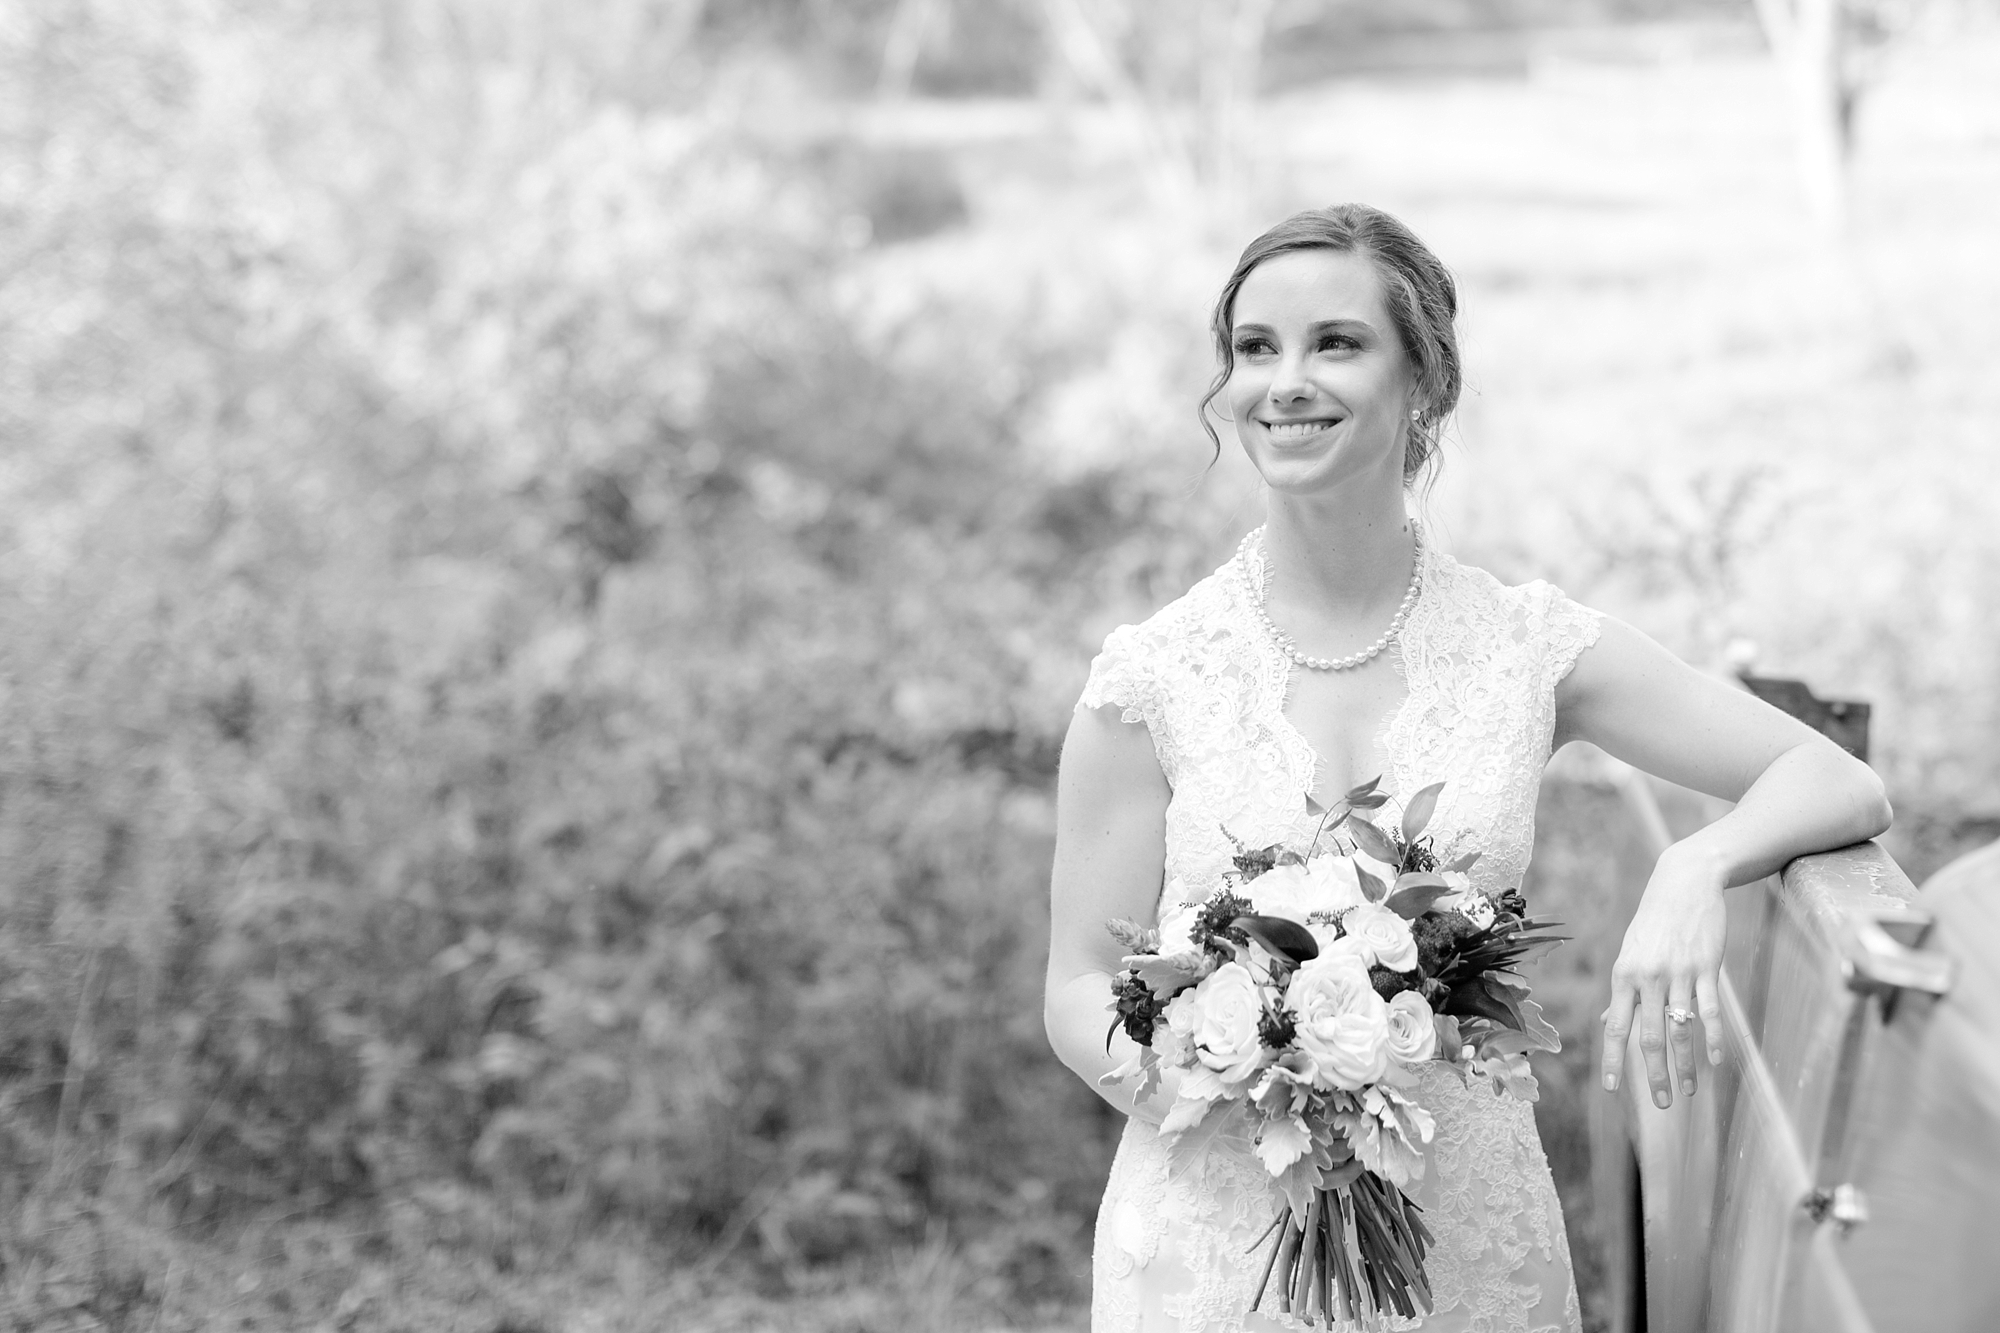 Bird 3. Bride & Groom Portraits-333_anna grace photography baltimore maryland wedding photographer chanteclaire wedding photo.jpg